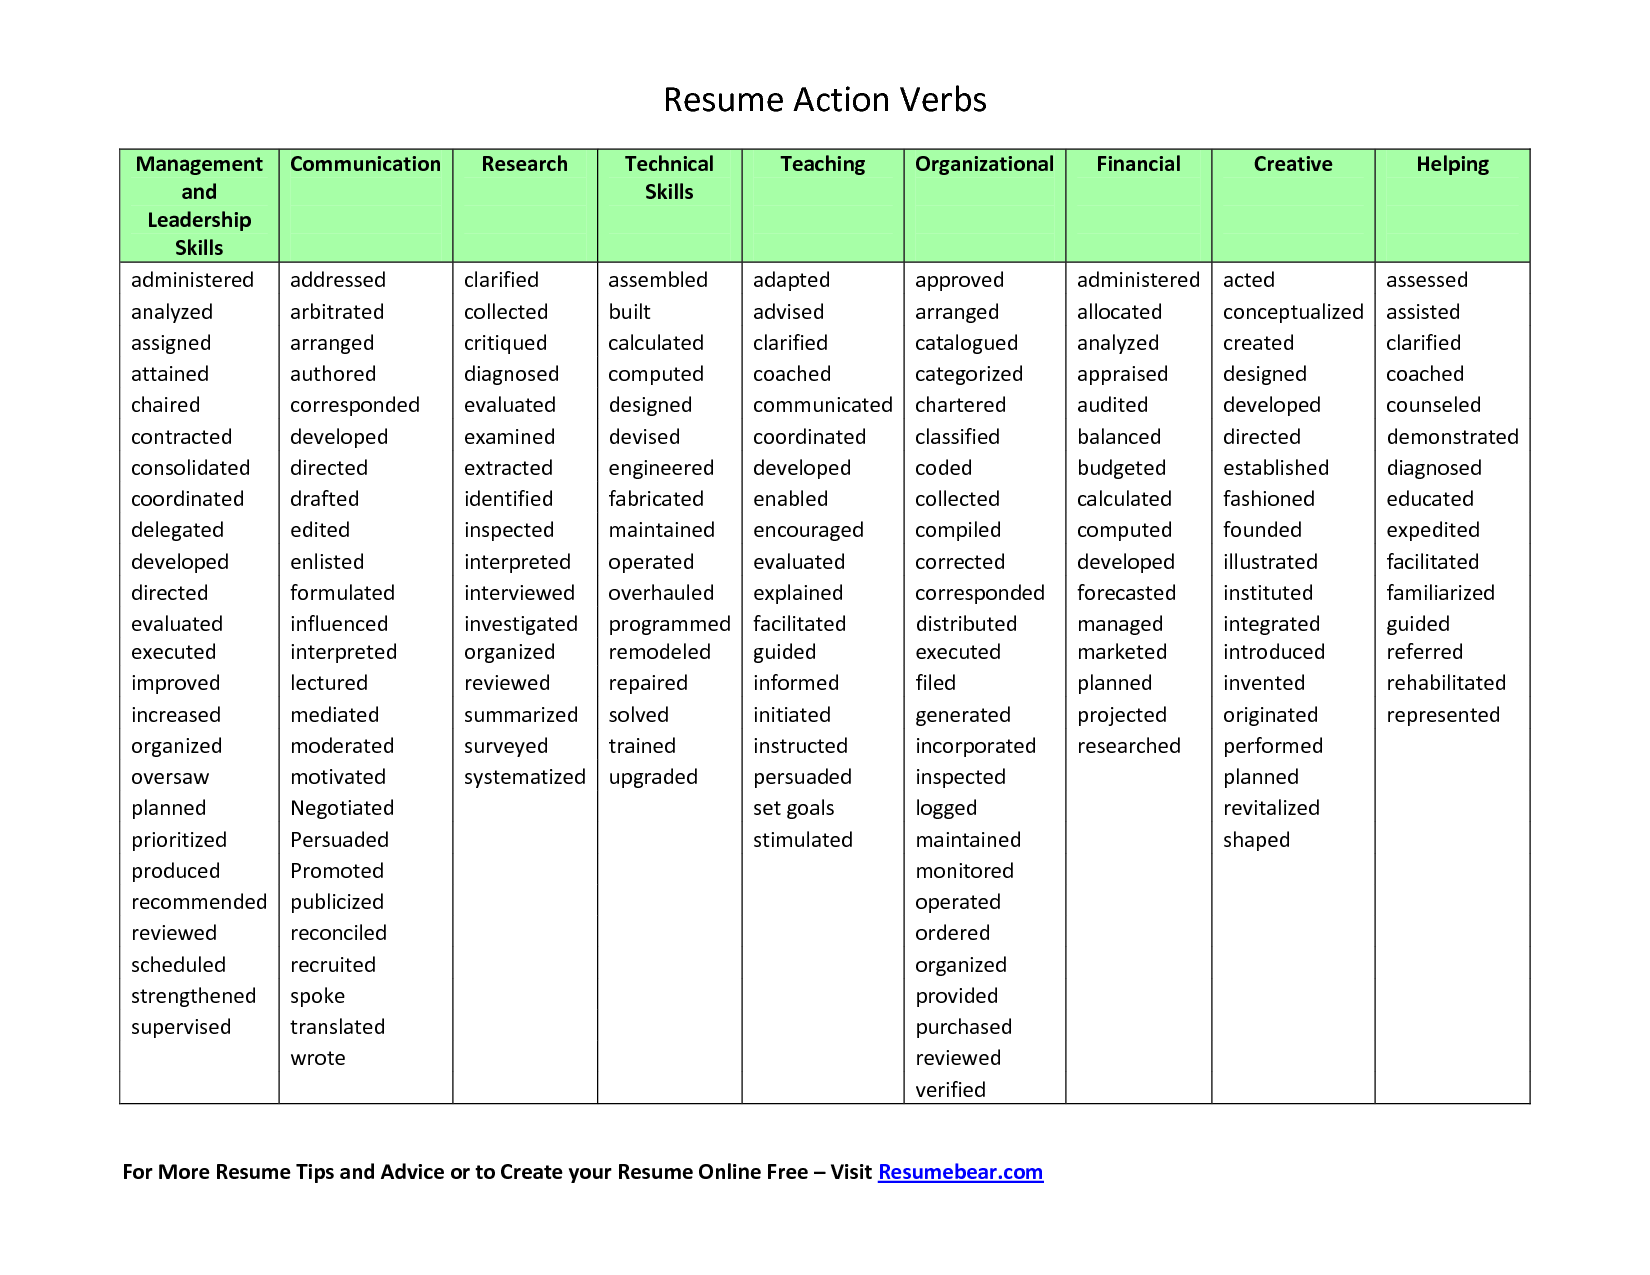 resume List Of Action Verbs For Resumes action verbs list resumes jianbochen com for resume printable